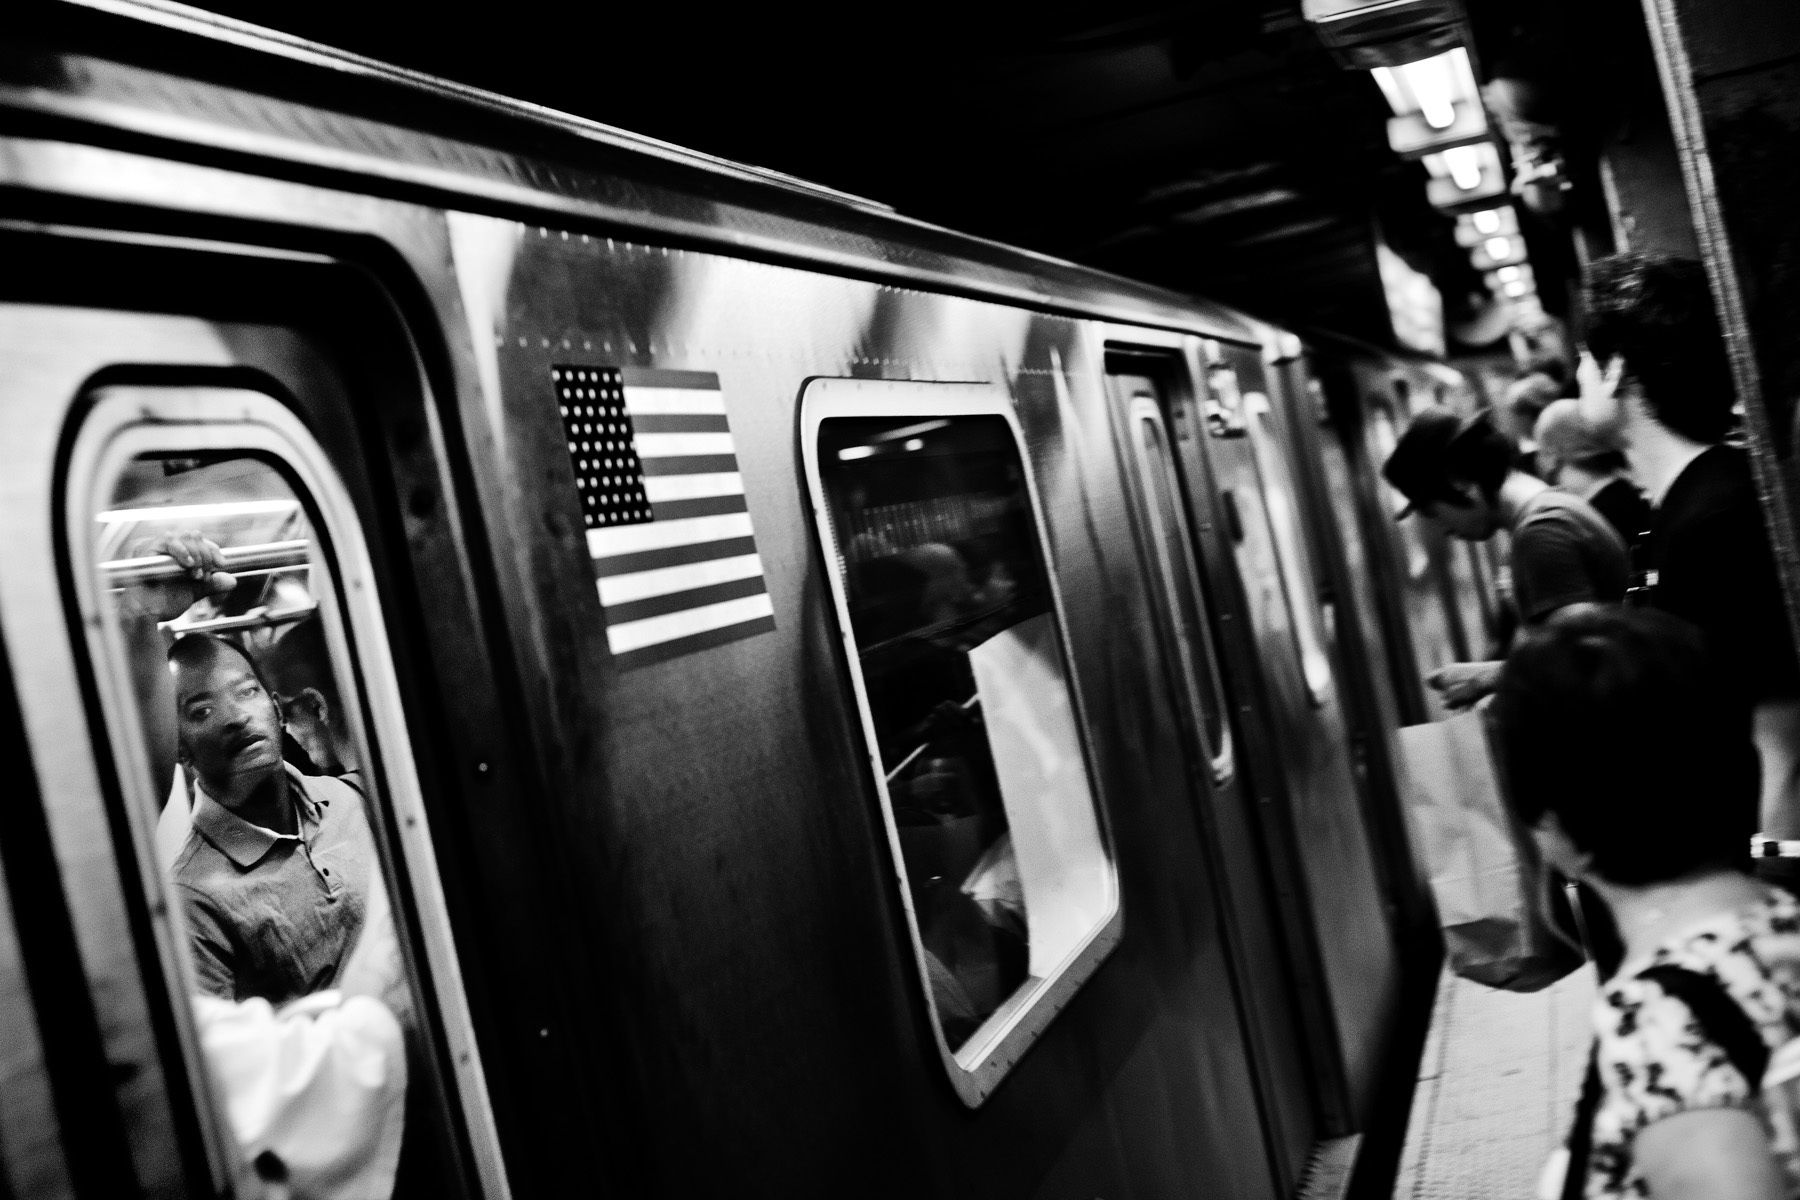 Subway, New York, NY, 2010